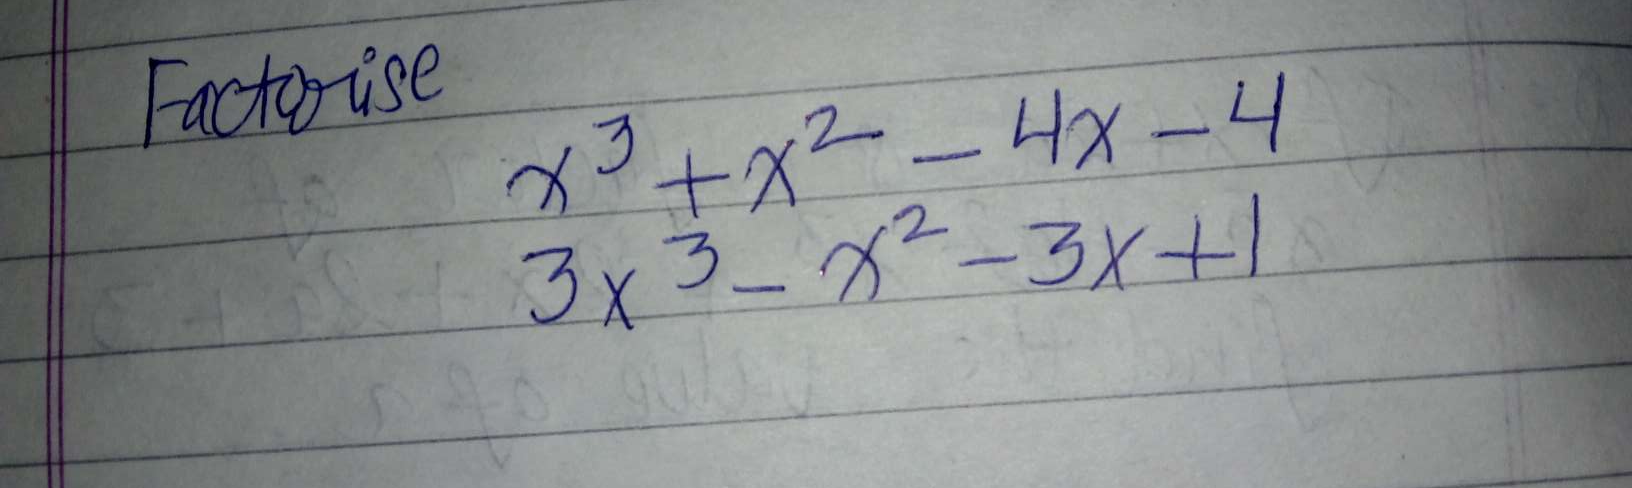 Check here step-by-step solution of ' Factorise  x3+x2−4x−43x3−x2−3x+1' questions at Instasolv!